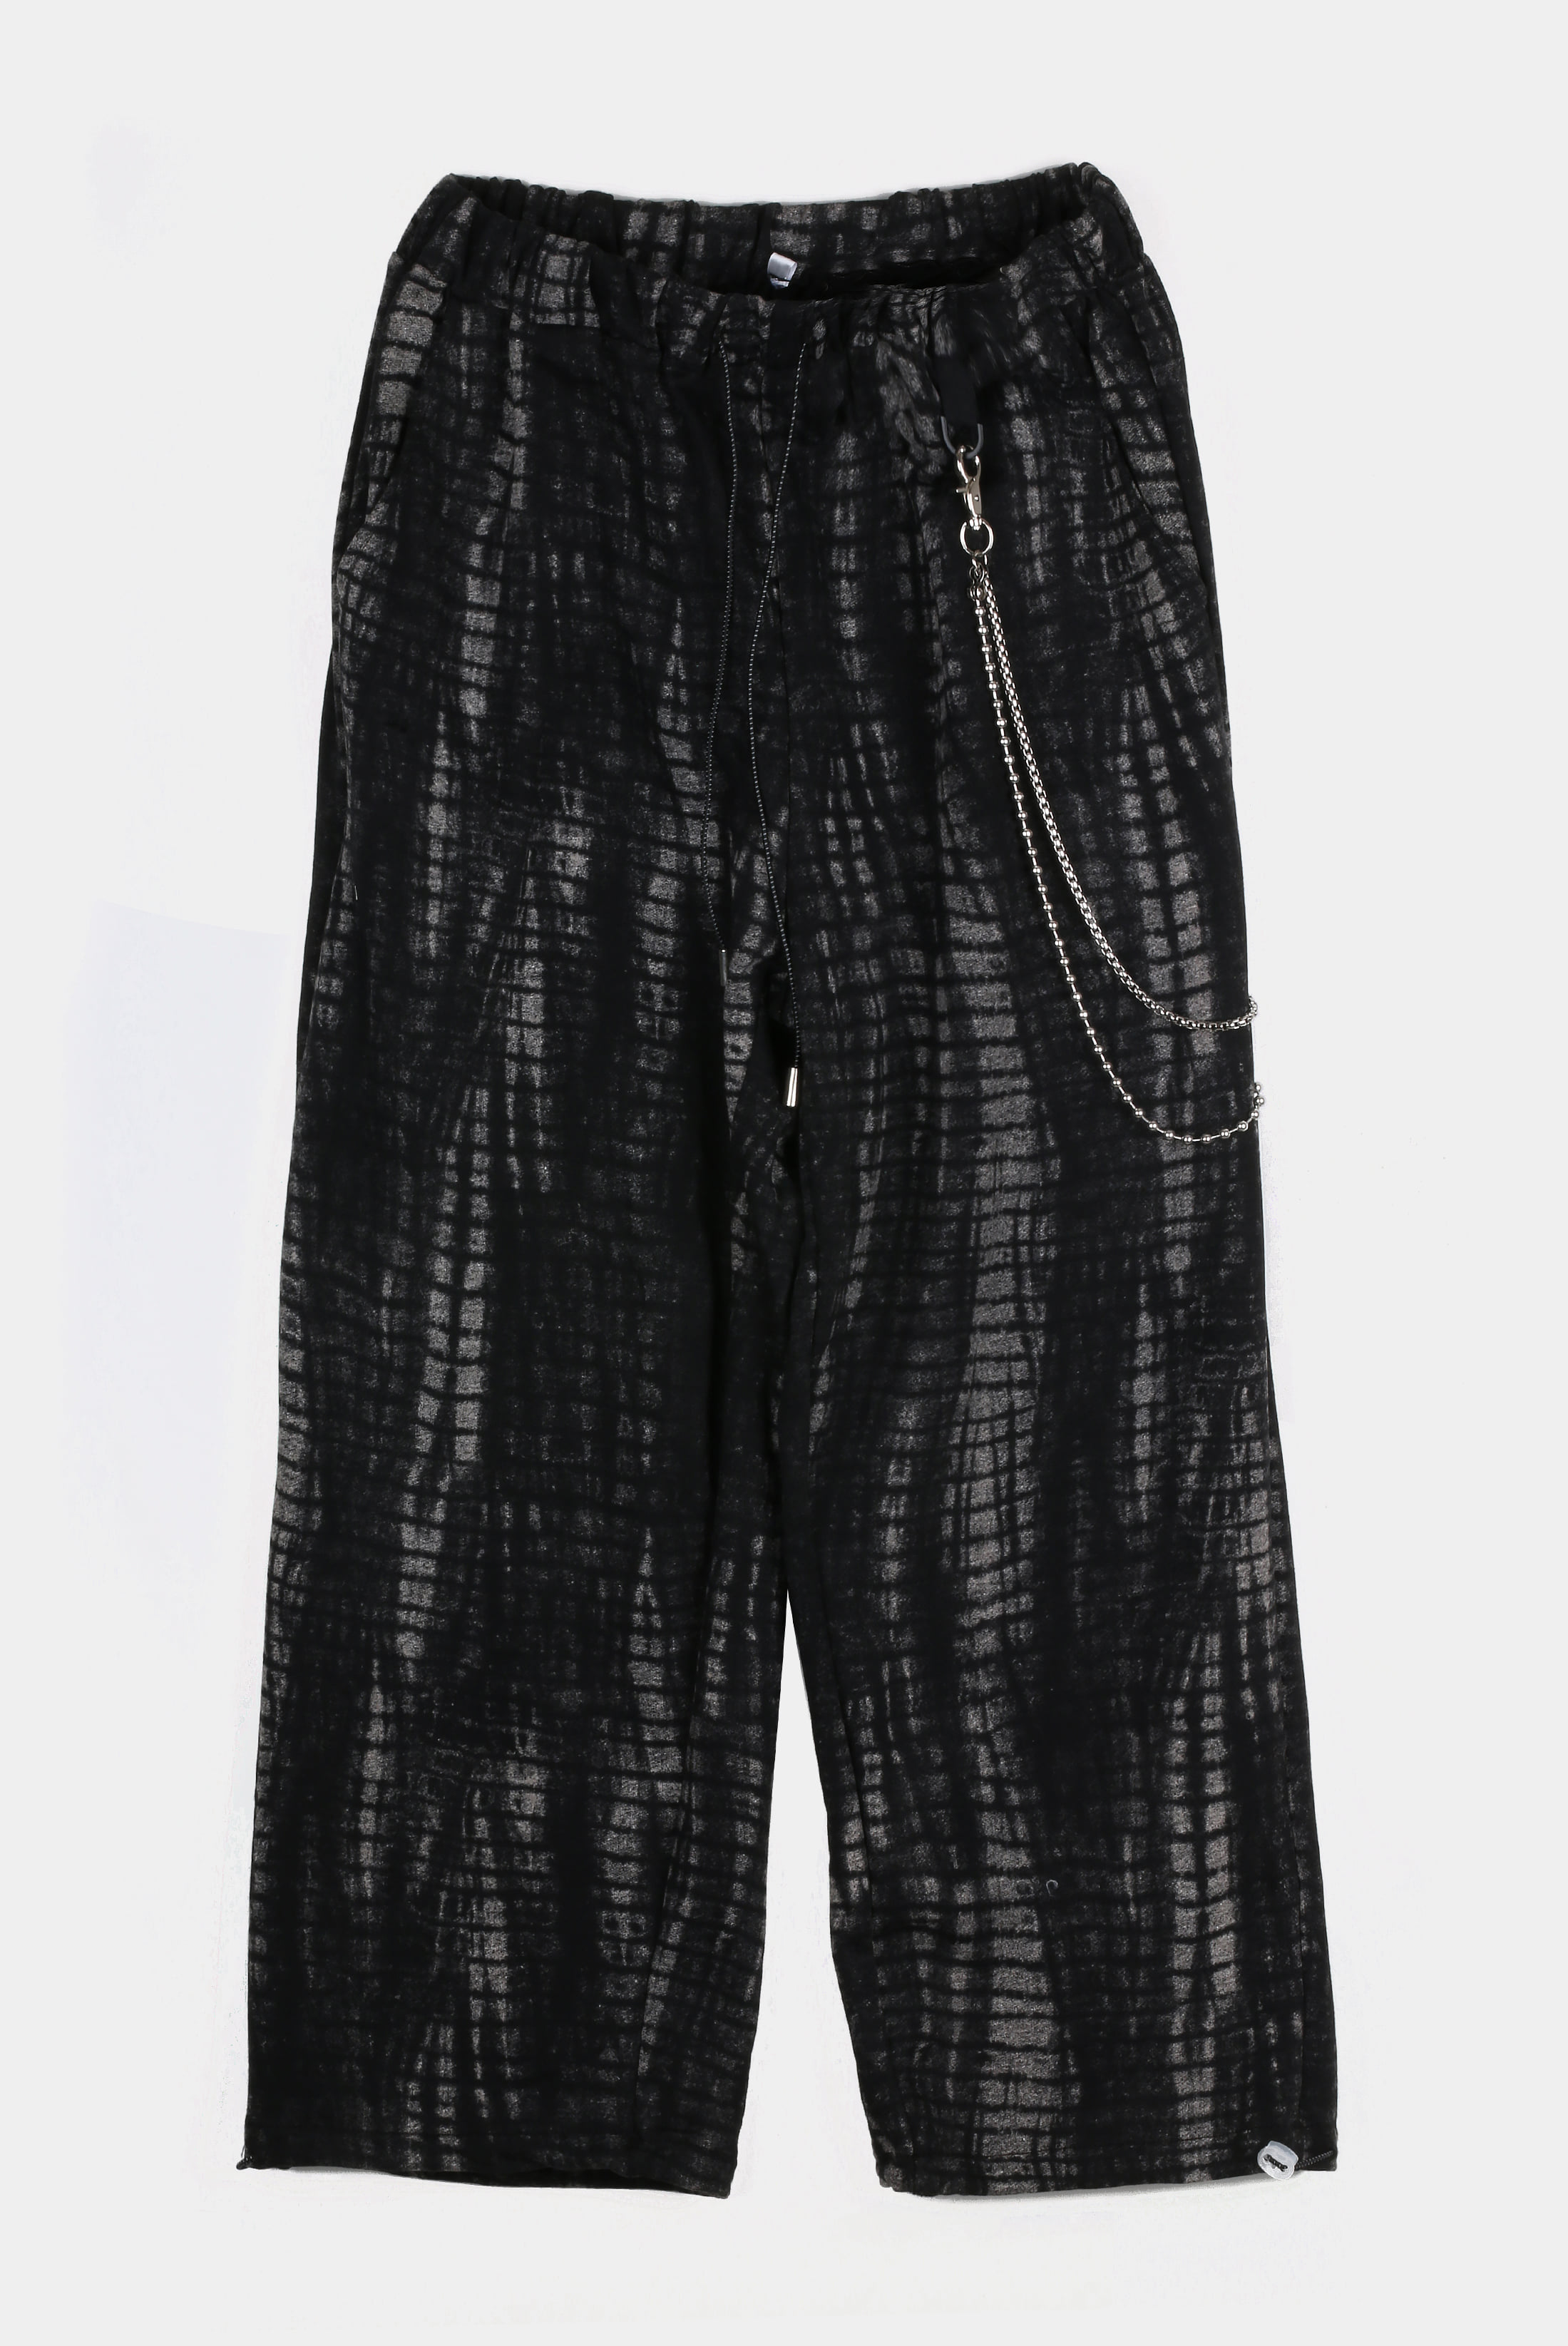 Snake Tye-dye Chain Pants